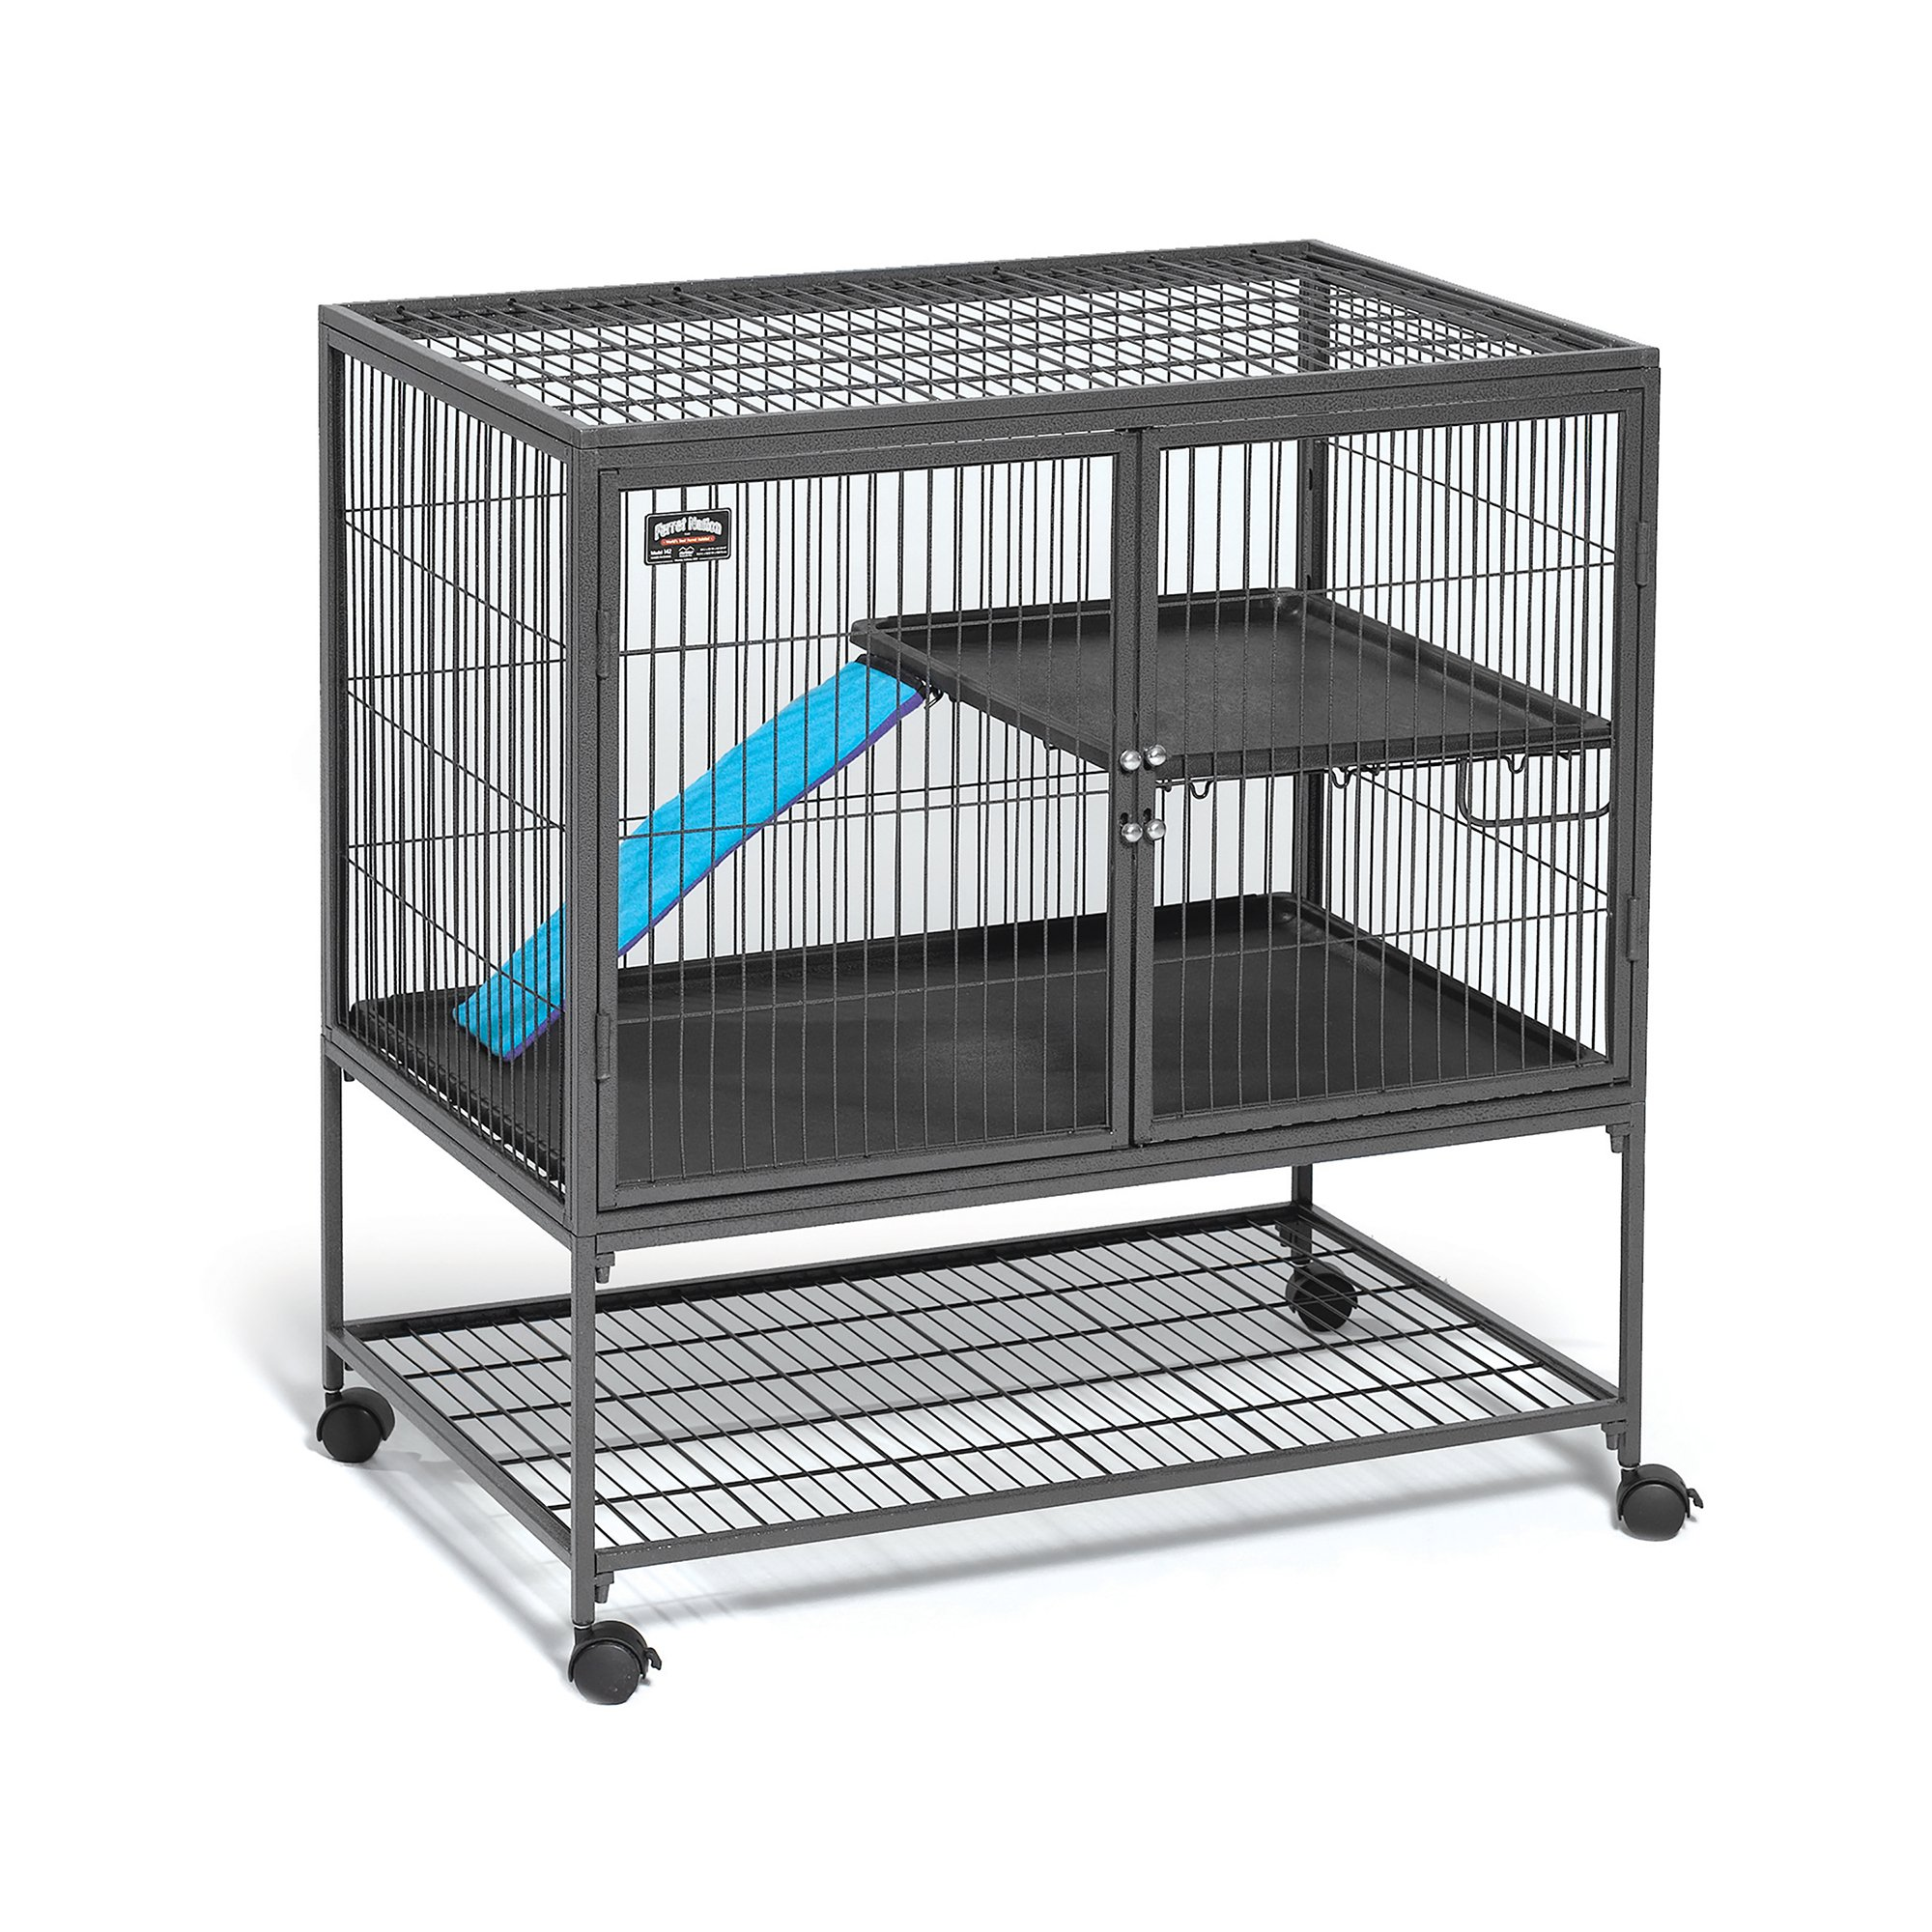 Midwest Deluxe Ferret Nation Double Unit Ferret Cage (Model 182) Includes 2 Leak-Proof Pans, 2 Shelves, 3 Ramps w/Ramp Covers & 4 Locking Wheel Casters, Measures 36'' L x 25'' W x 62.5'' H Inches by MidWest Homes for Pets